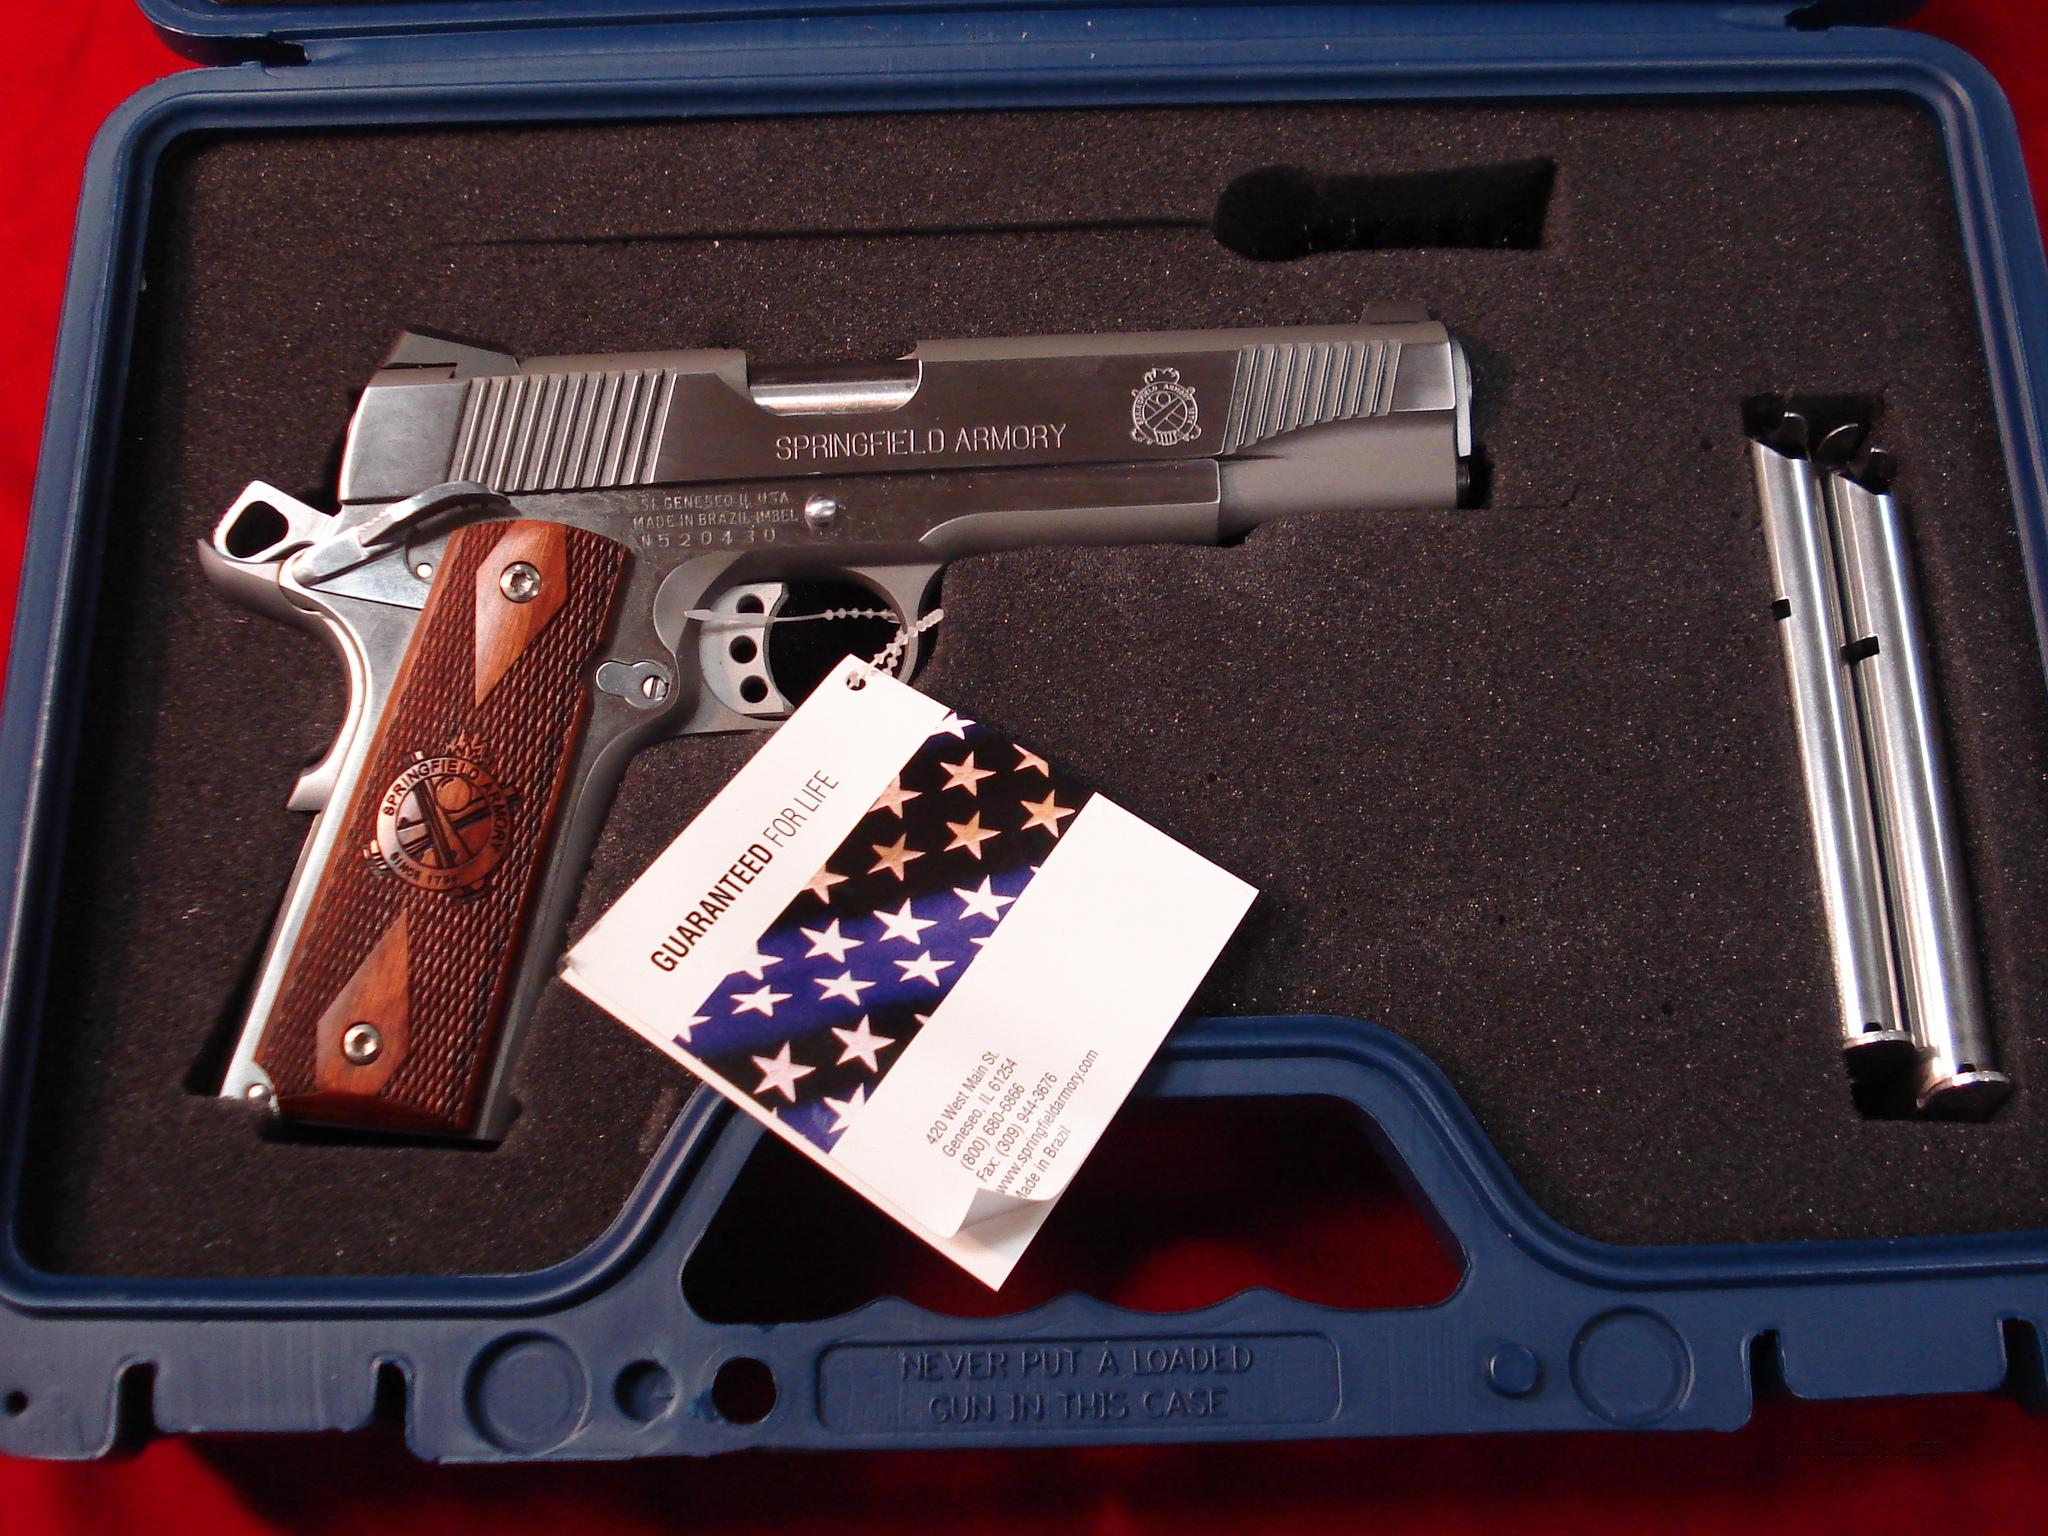 SPRINGFIELD ARMORY 1911 A1 LOADED (PX9151LP)  Guns > Pistols > Springfield Armory Pistols > 1911 Type